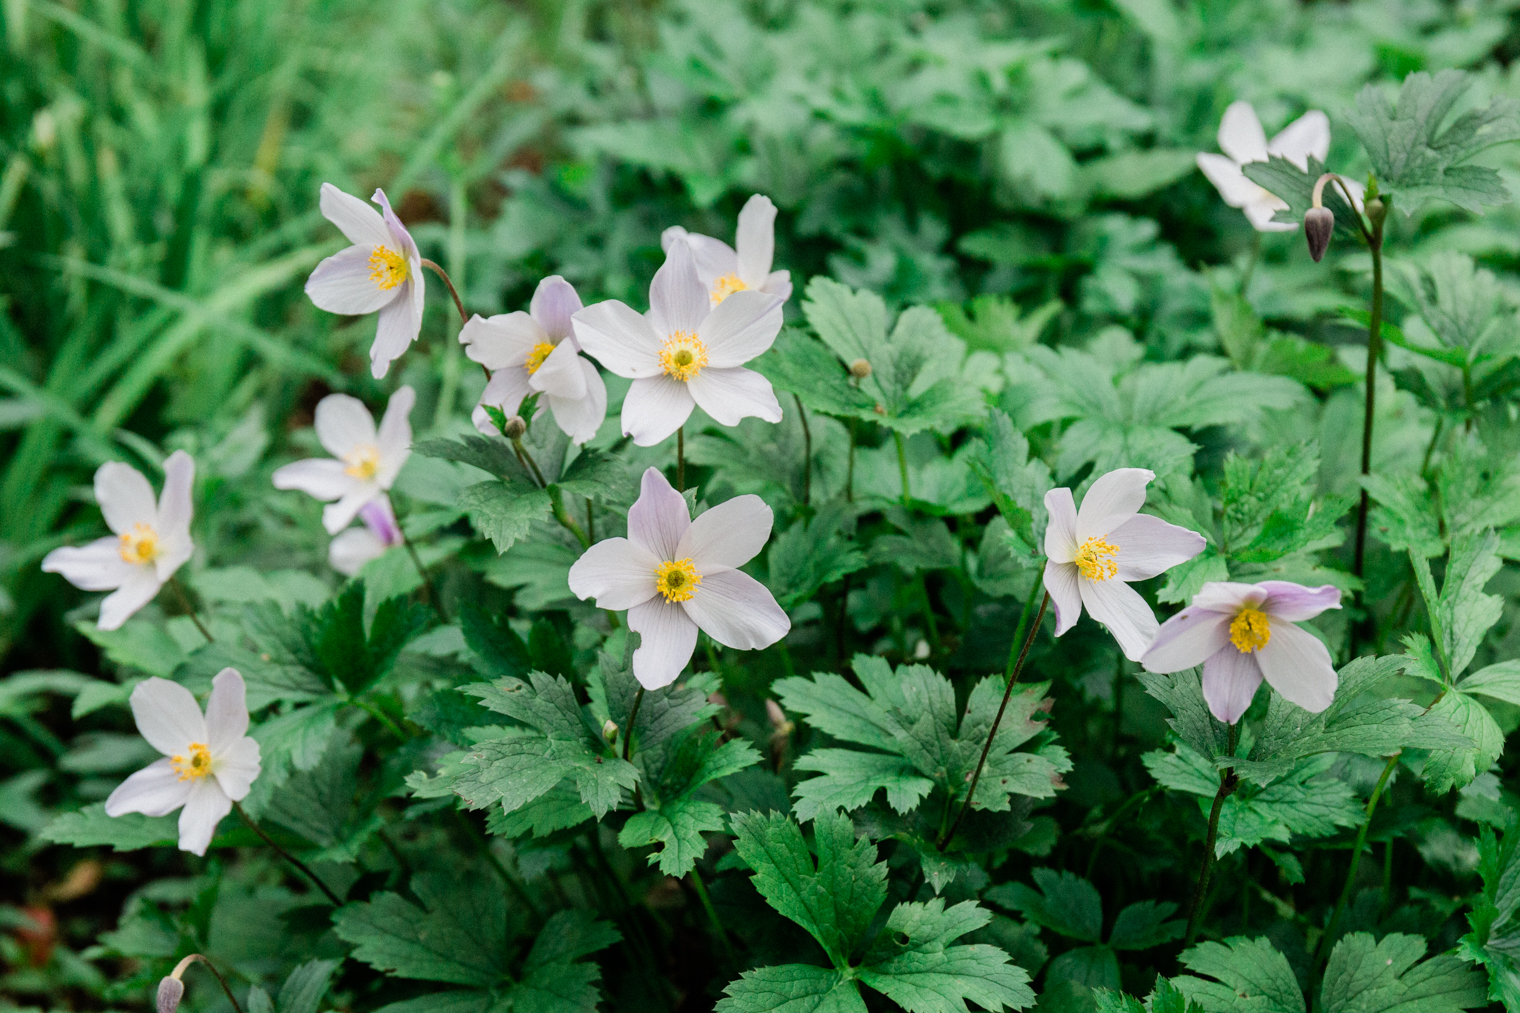 Japanese anemones at Thyme